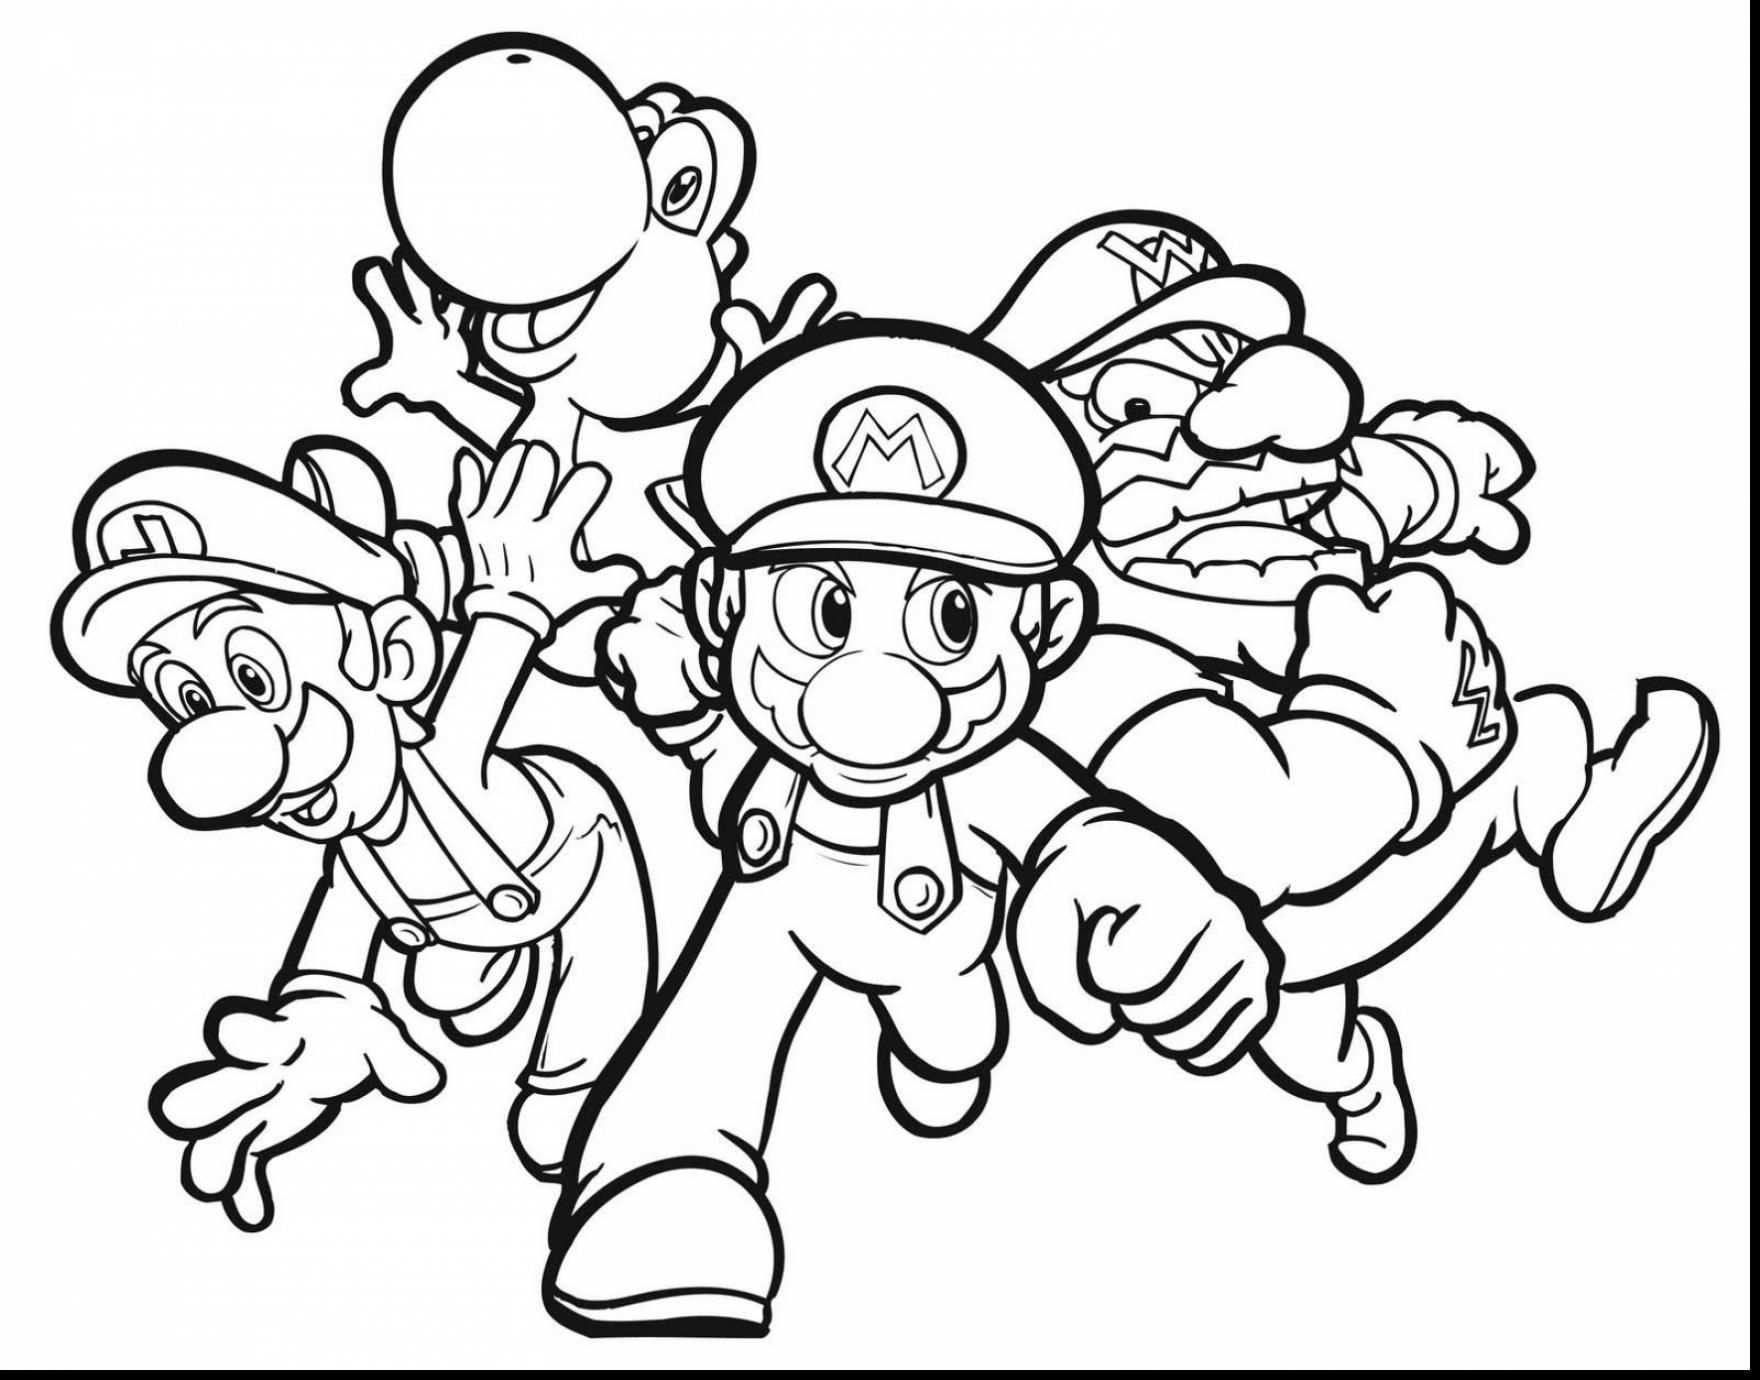 Mario Odyssey Coloring Pages Coloring Pages Mario Coloring Pages